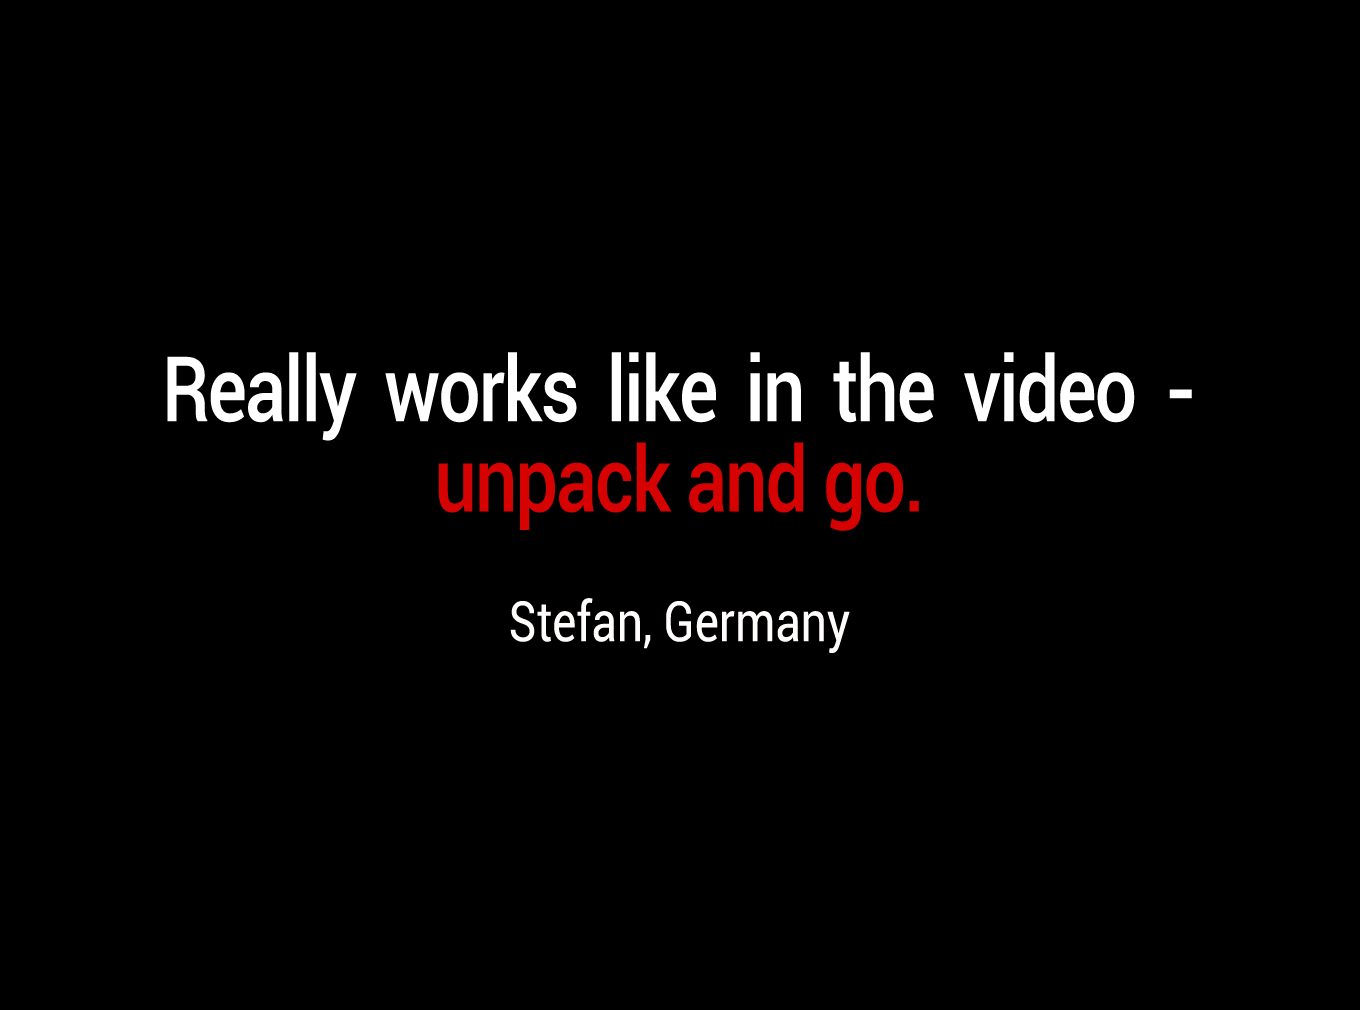 Really works like in the video